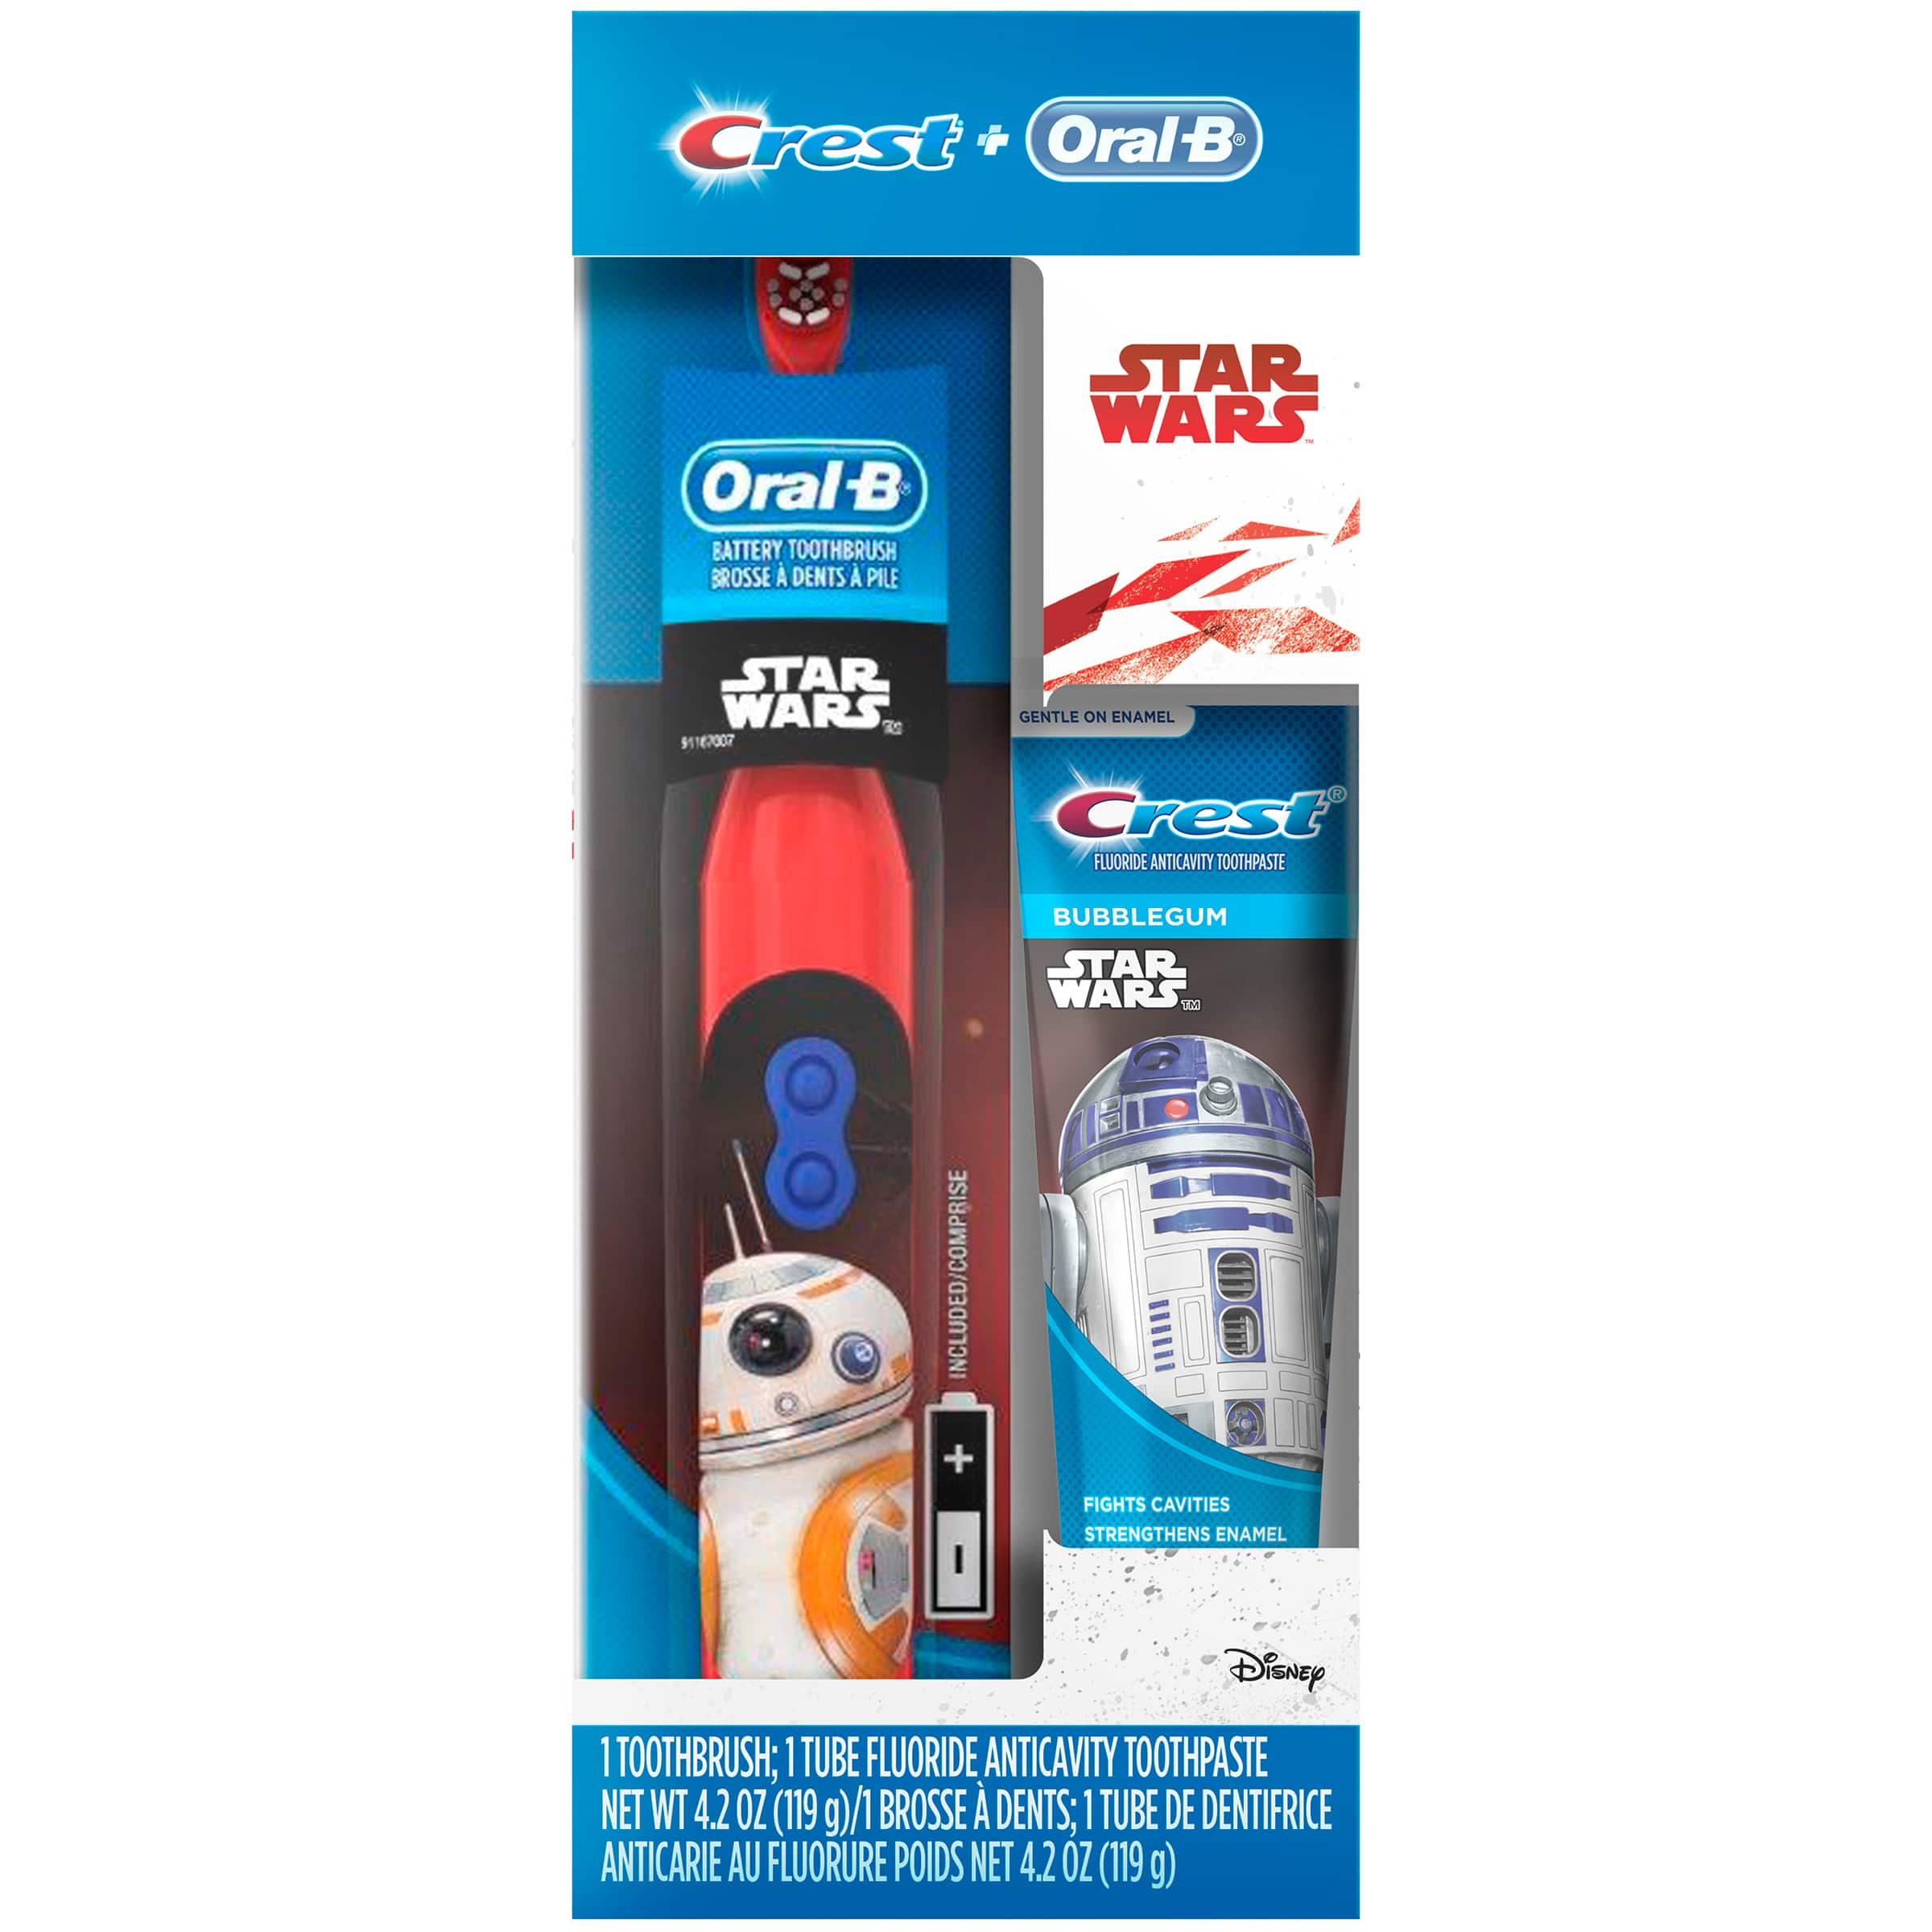 Oral-B and Crest Kid's Holiday Pack Featuring Disney's STAR WARS